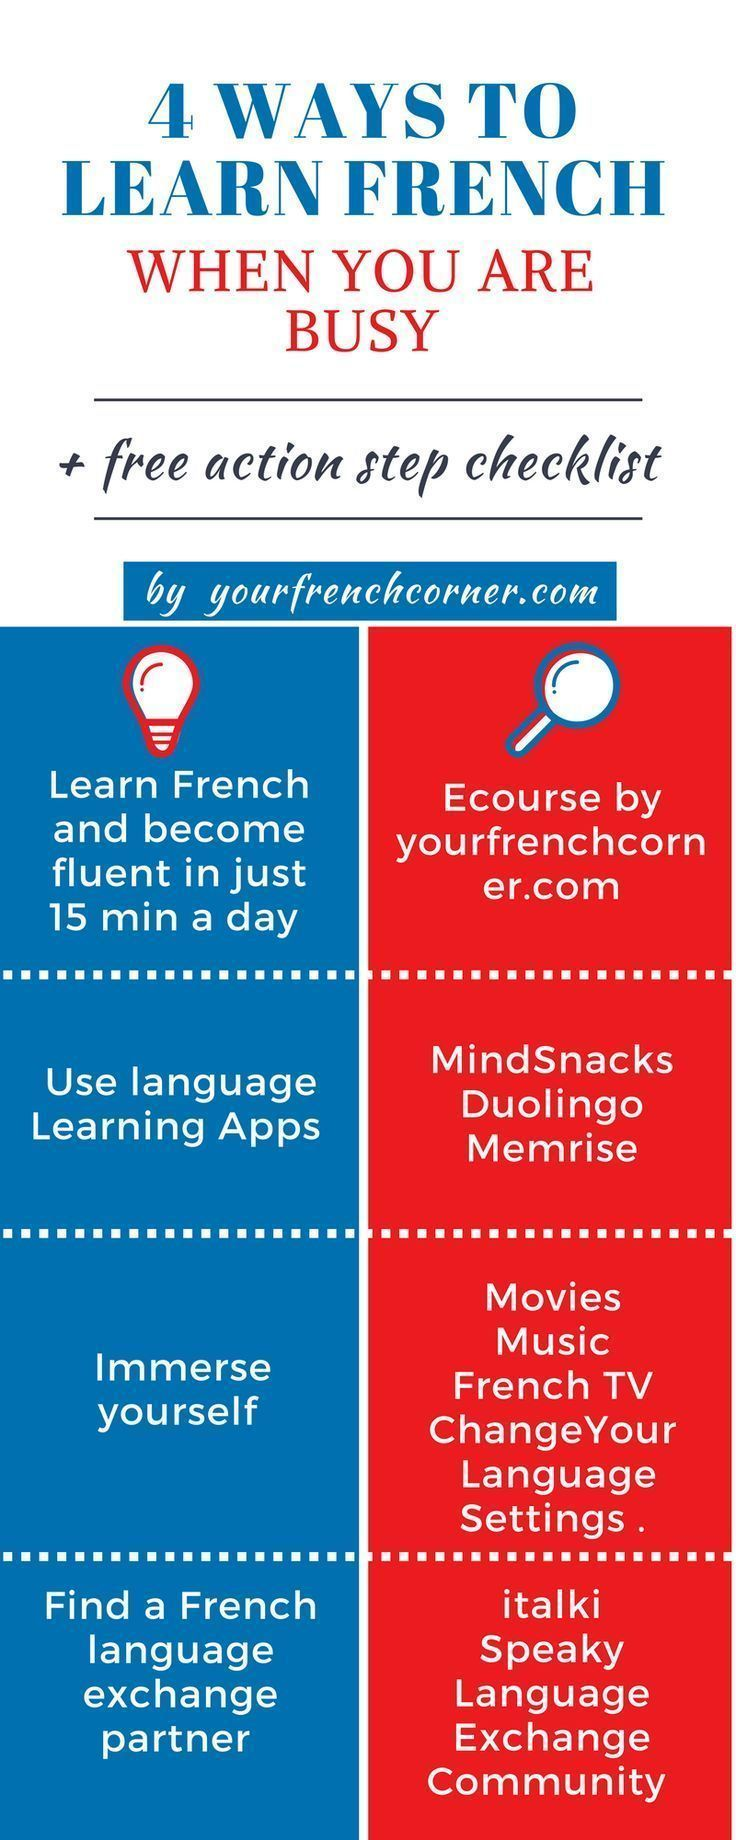 No Problem Here Are 4 Easy Ways To Learn French